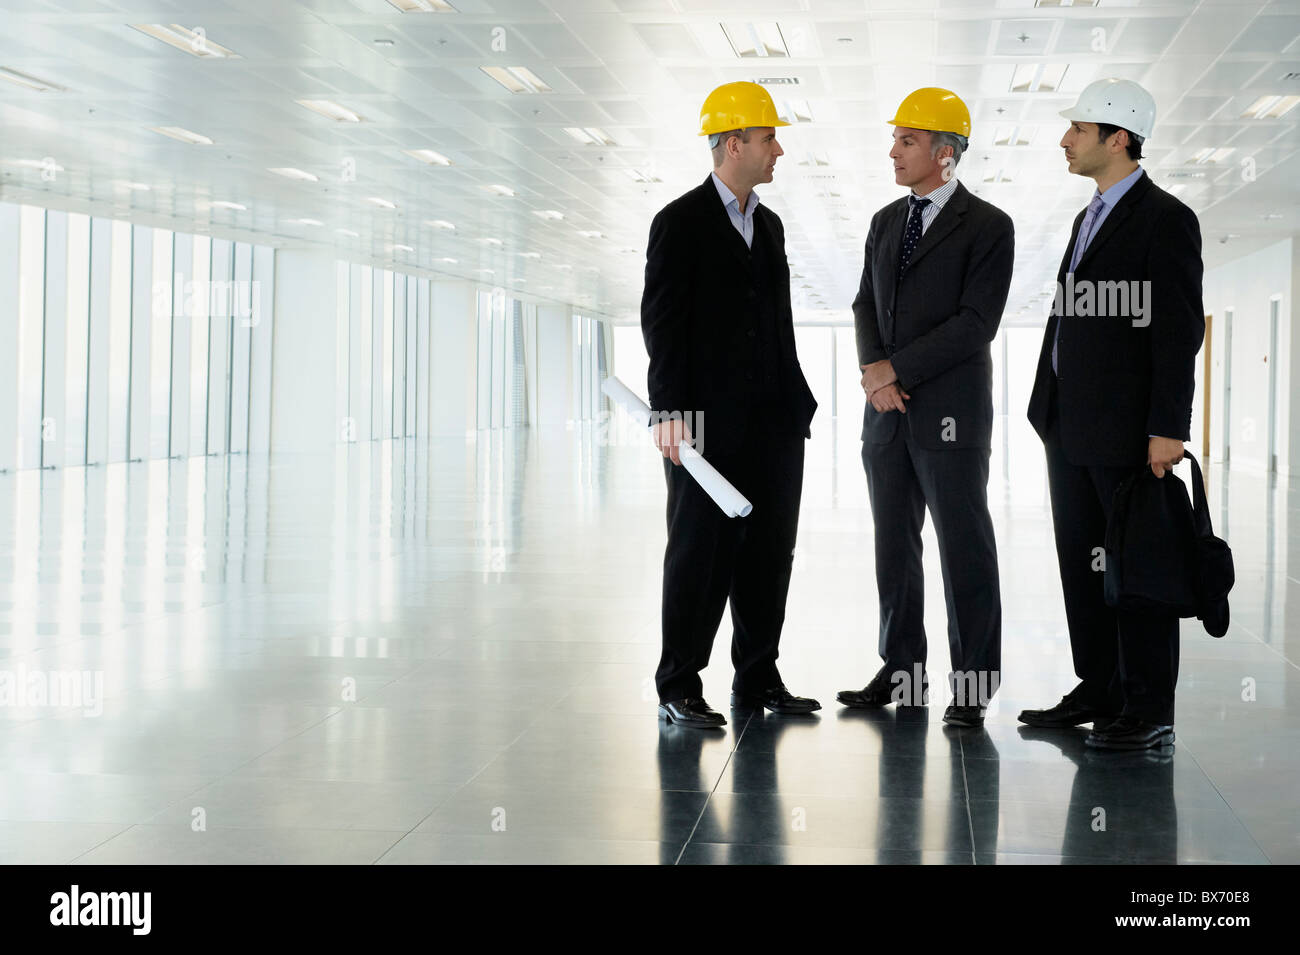 Three executives in hardhats in empty office space - Stock Image